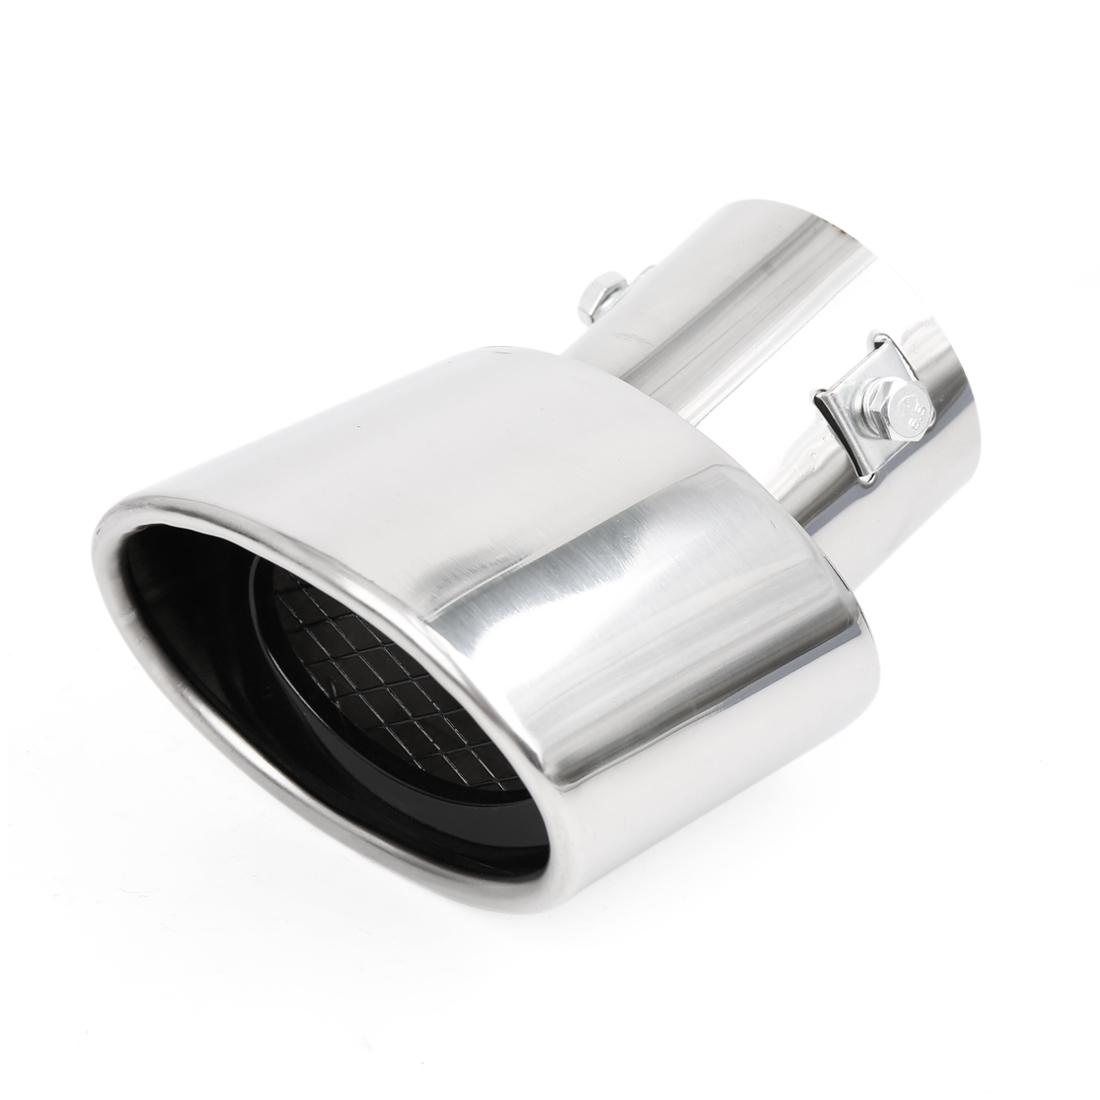 "Universal Car Stainless Steel Chrome Curved Exhaust Tail Muffler Tip Pipe Fit Diameter 1 1/4"" to 2"""